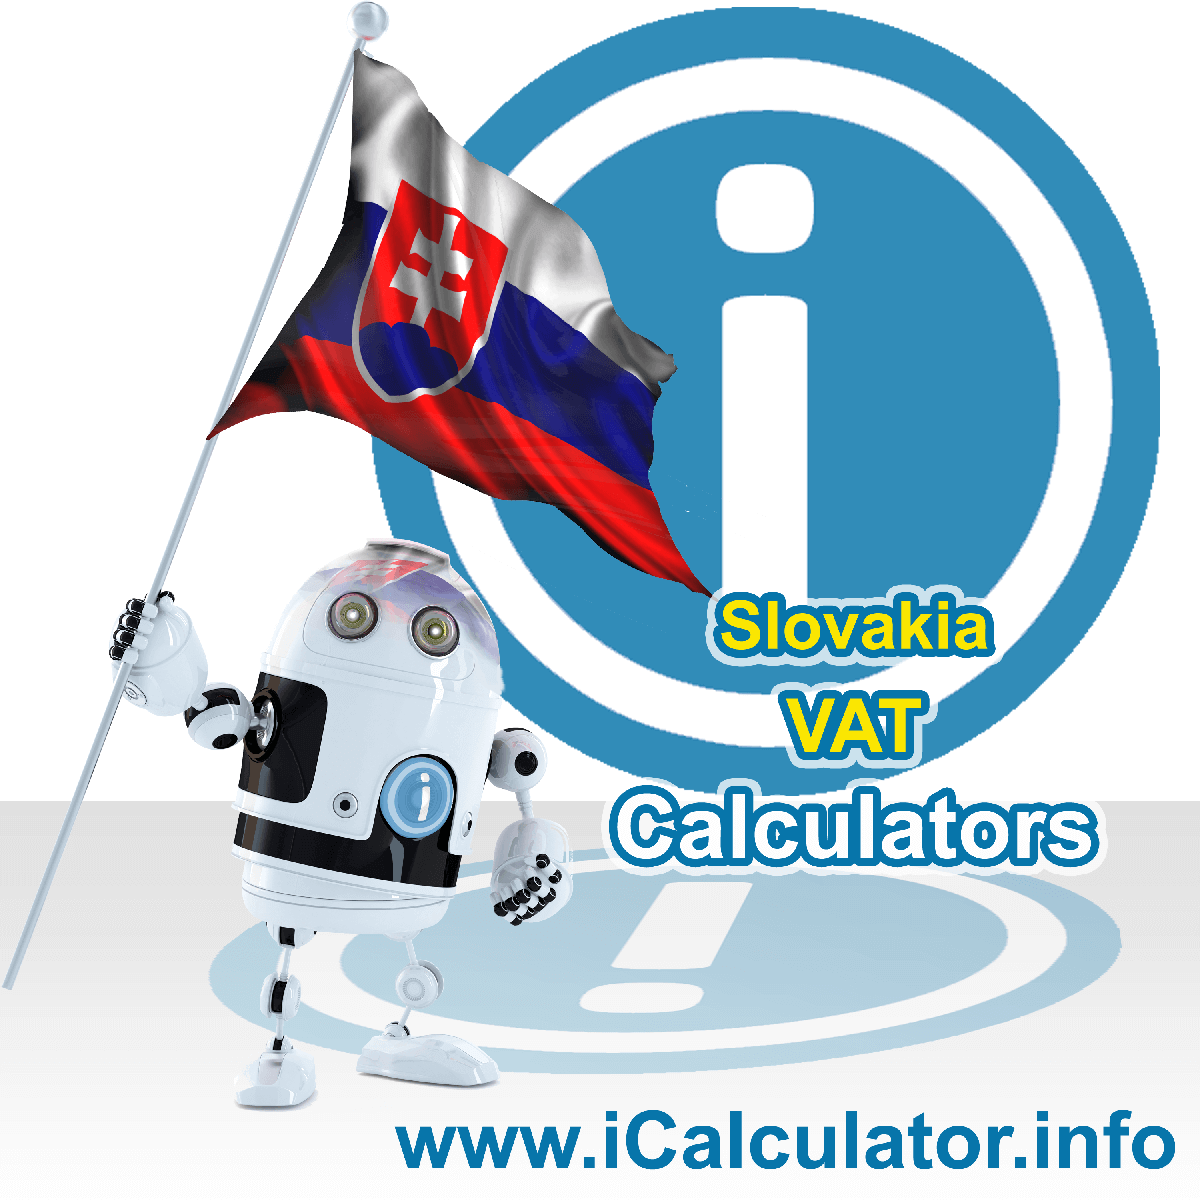 Slovakia VAT Calculator. This image shows the Slovakia flag and information relating to the VAT formula used for calculating Value Added Tax in Slovakia using the Slovakia VAT Calculator in 2021